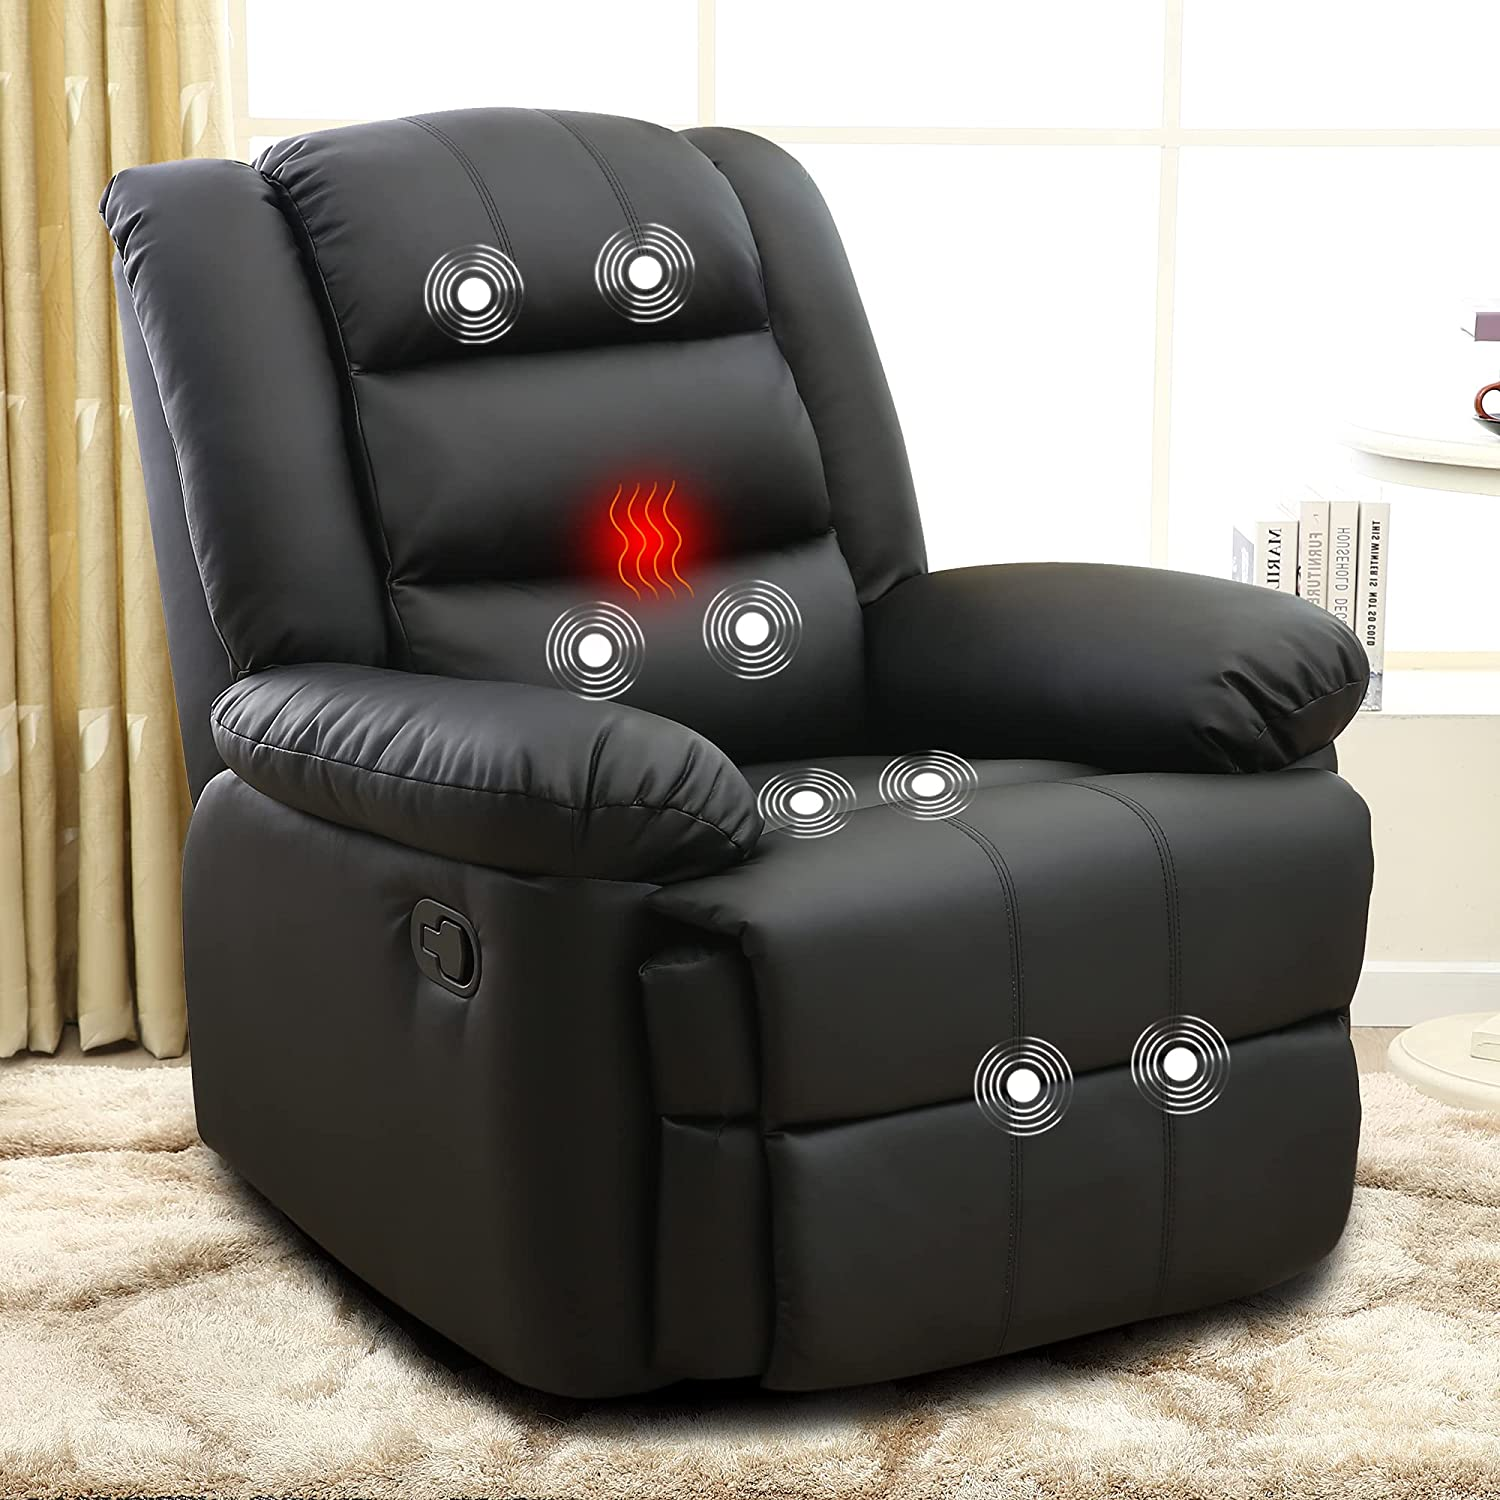 XRHOM Recliner Chair Reading Massage Chair Heated Pu Leather Ergonomic Reclining Chair Living Room Chairs Single Power Sofa Recliner Adjustable Modern Home Theater Seating Padded Seat Backrest,Black